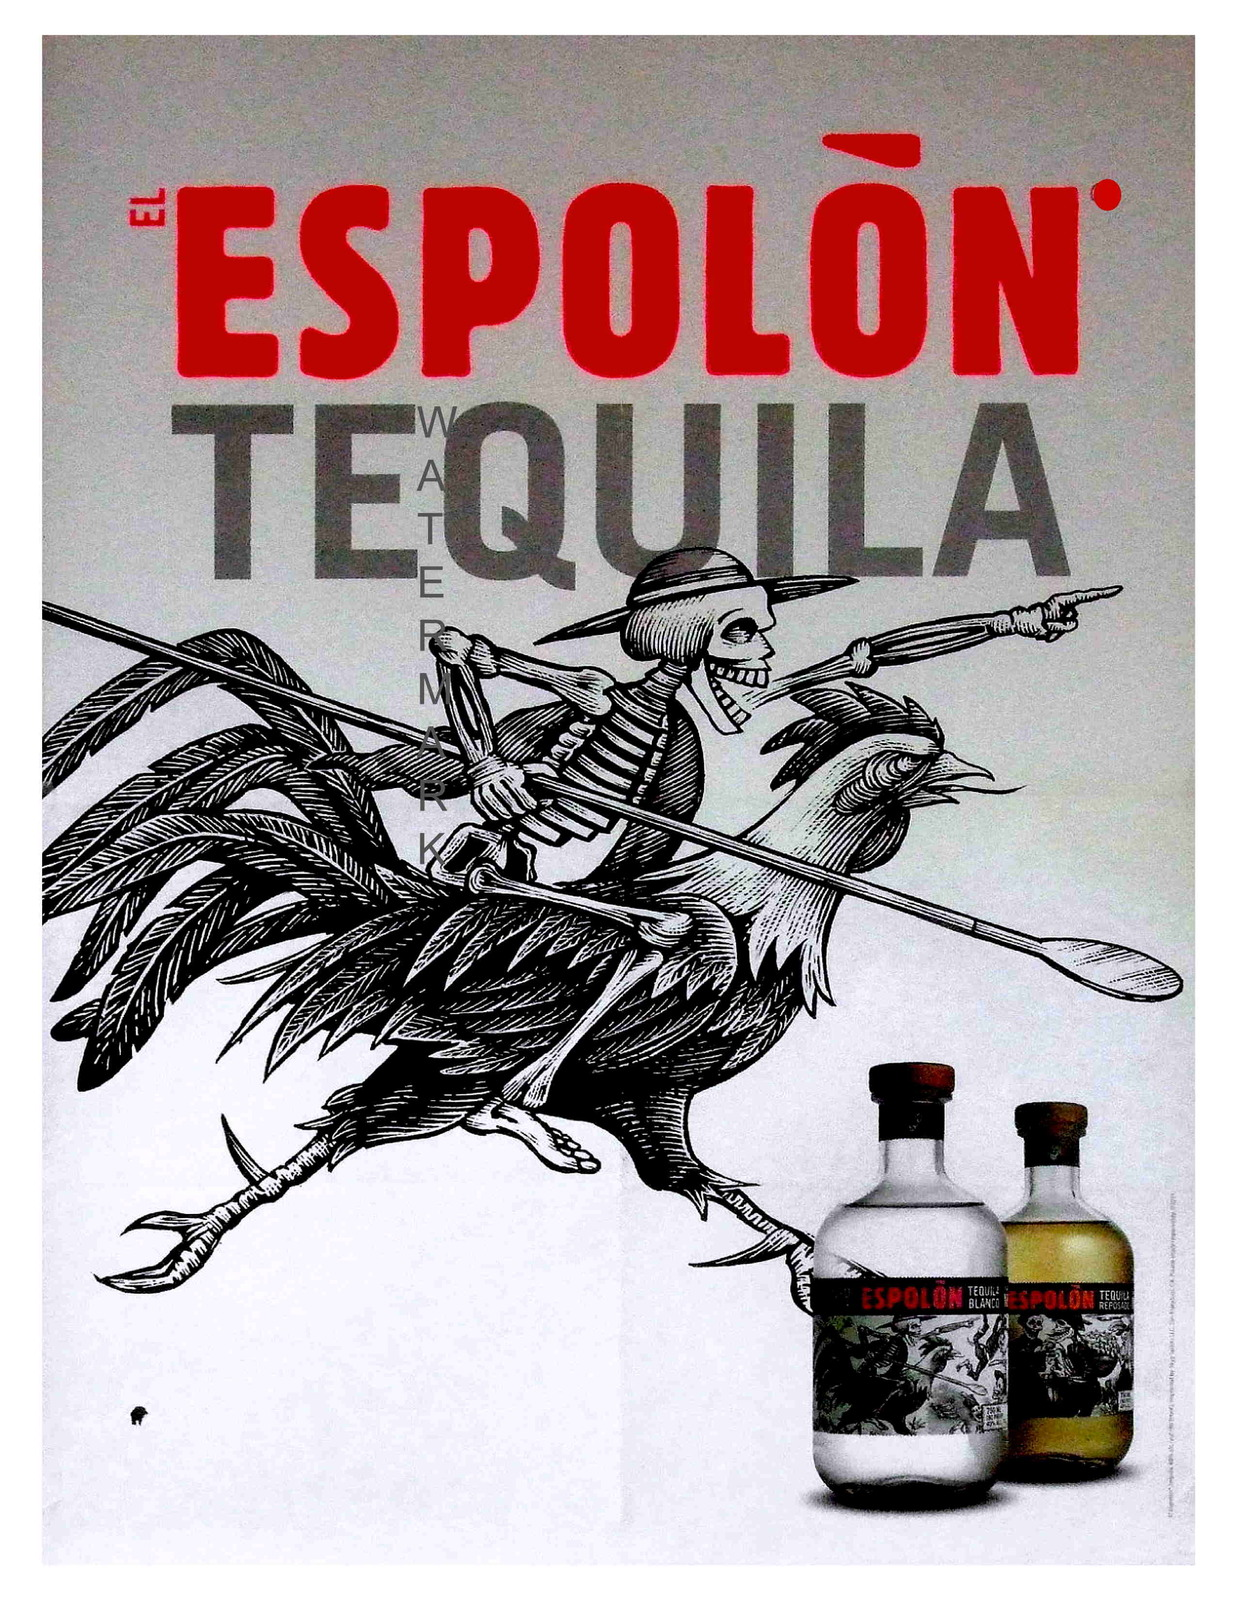 ESPOLON TEQUILA, Rare 1890 13 x 10 inch Advertising Giclee Canvas Print